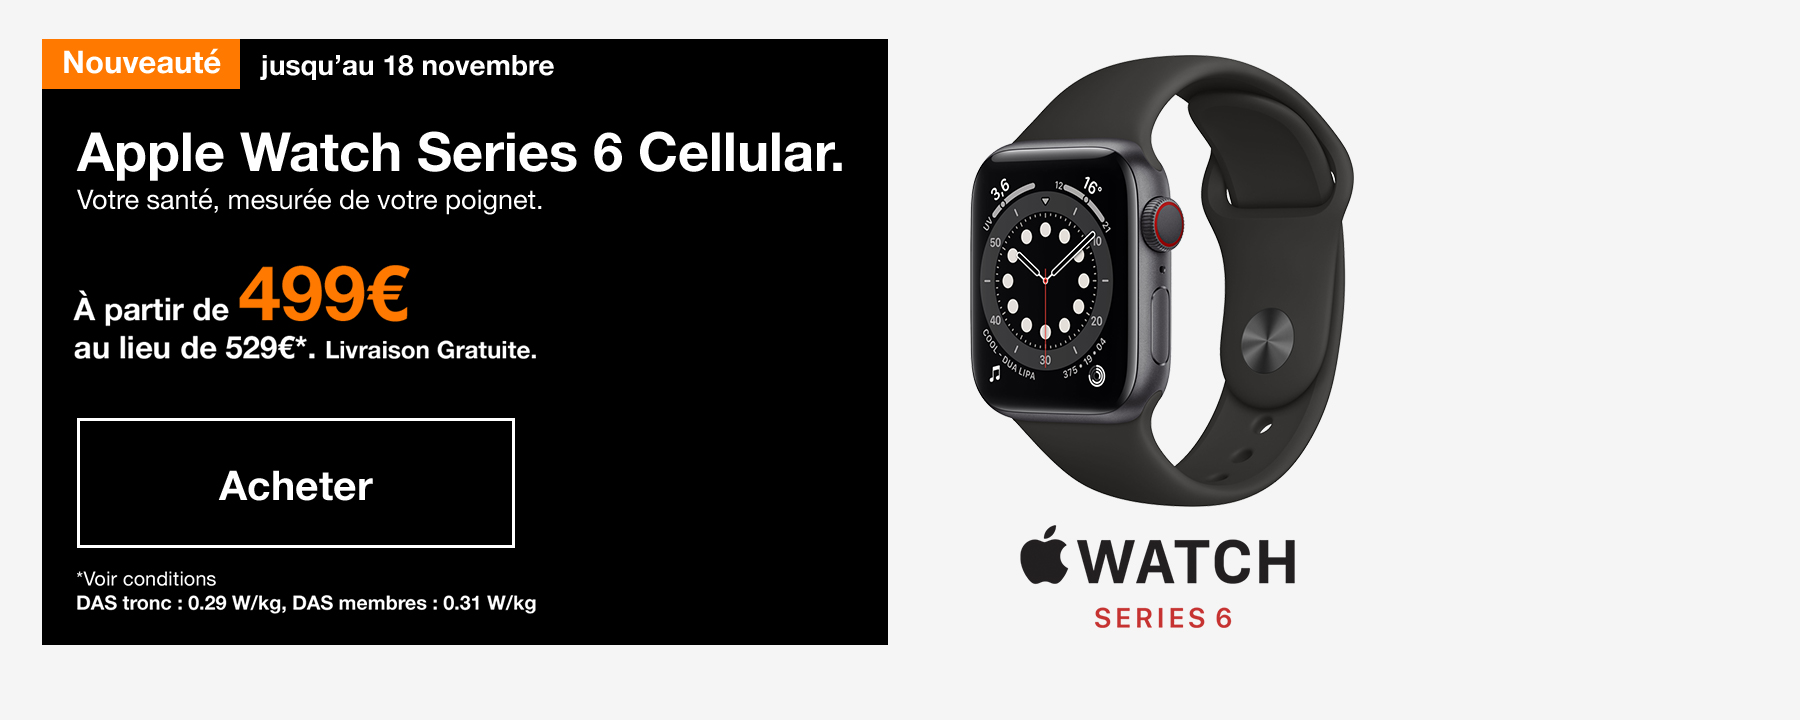 Nouveauté Apple Watch Series 6 Cellular